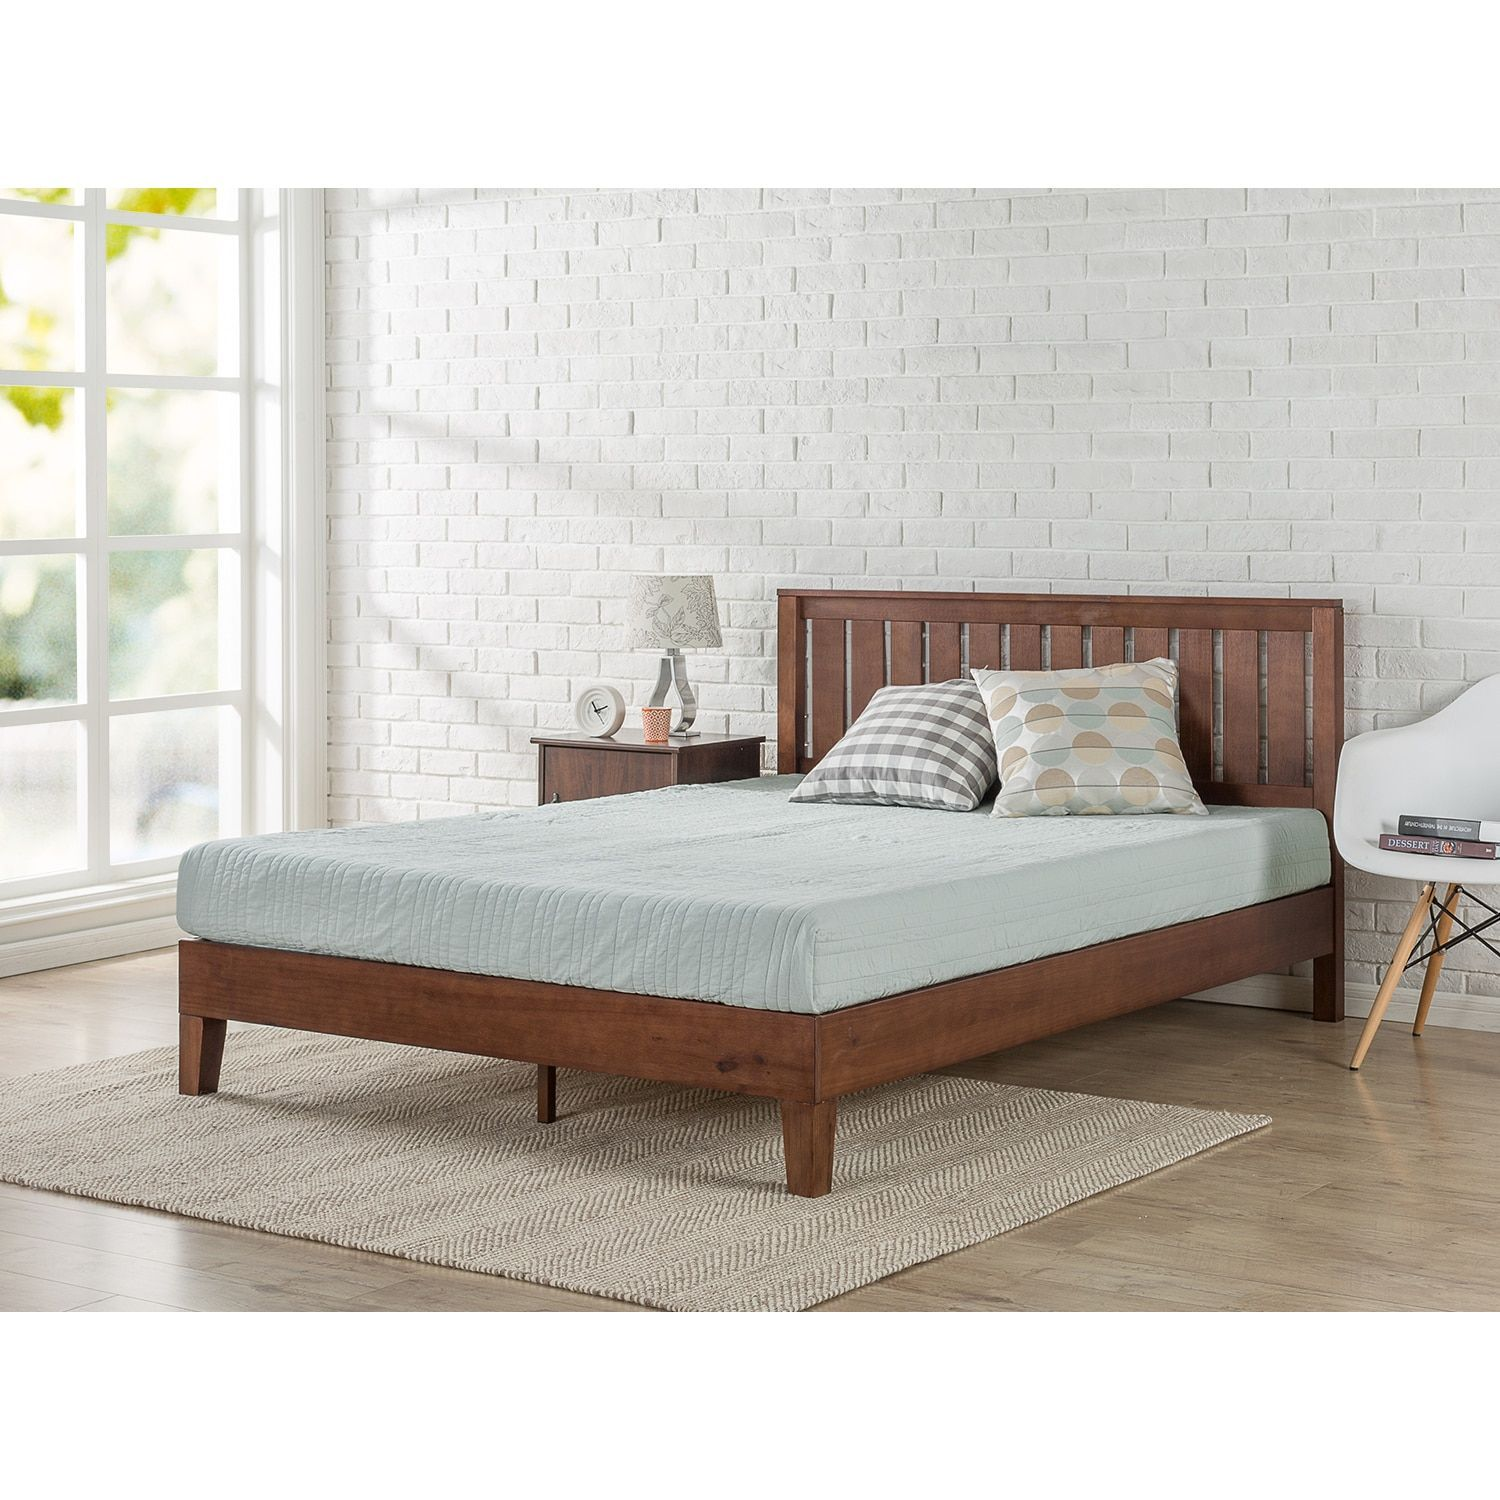 Priage By Zinus Deluxe Antique Espresso Wood Platform Bed With Headboard Twin Headboards For Beds Wood Platform